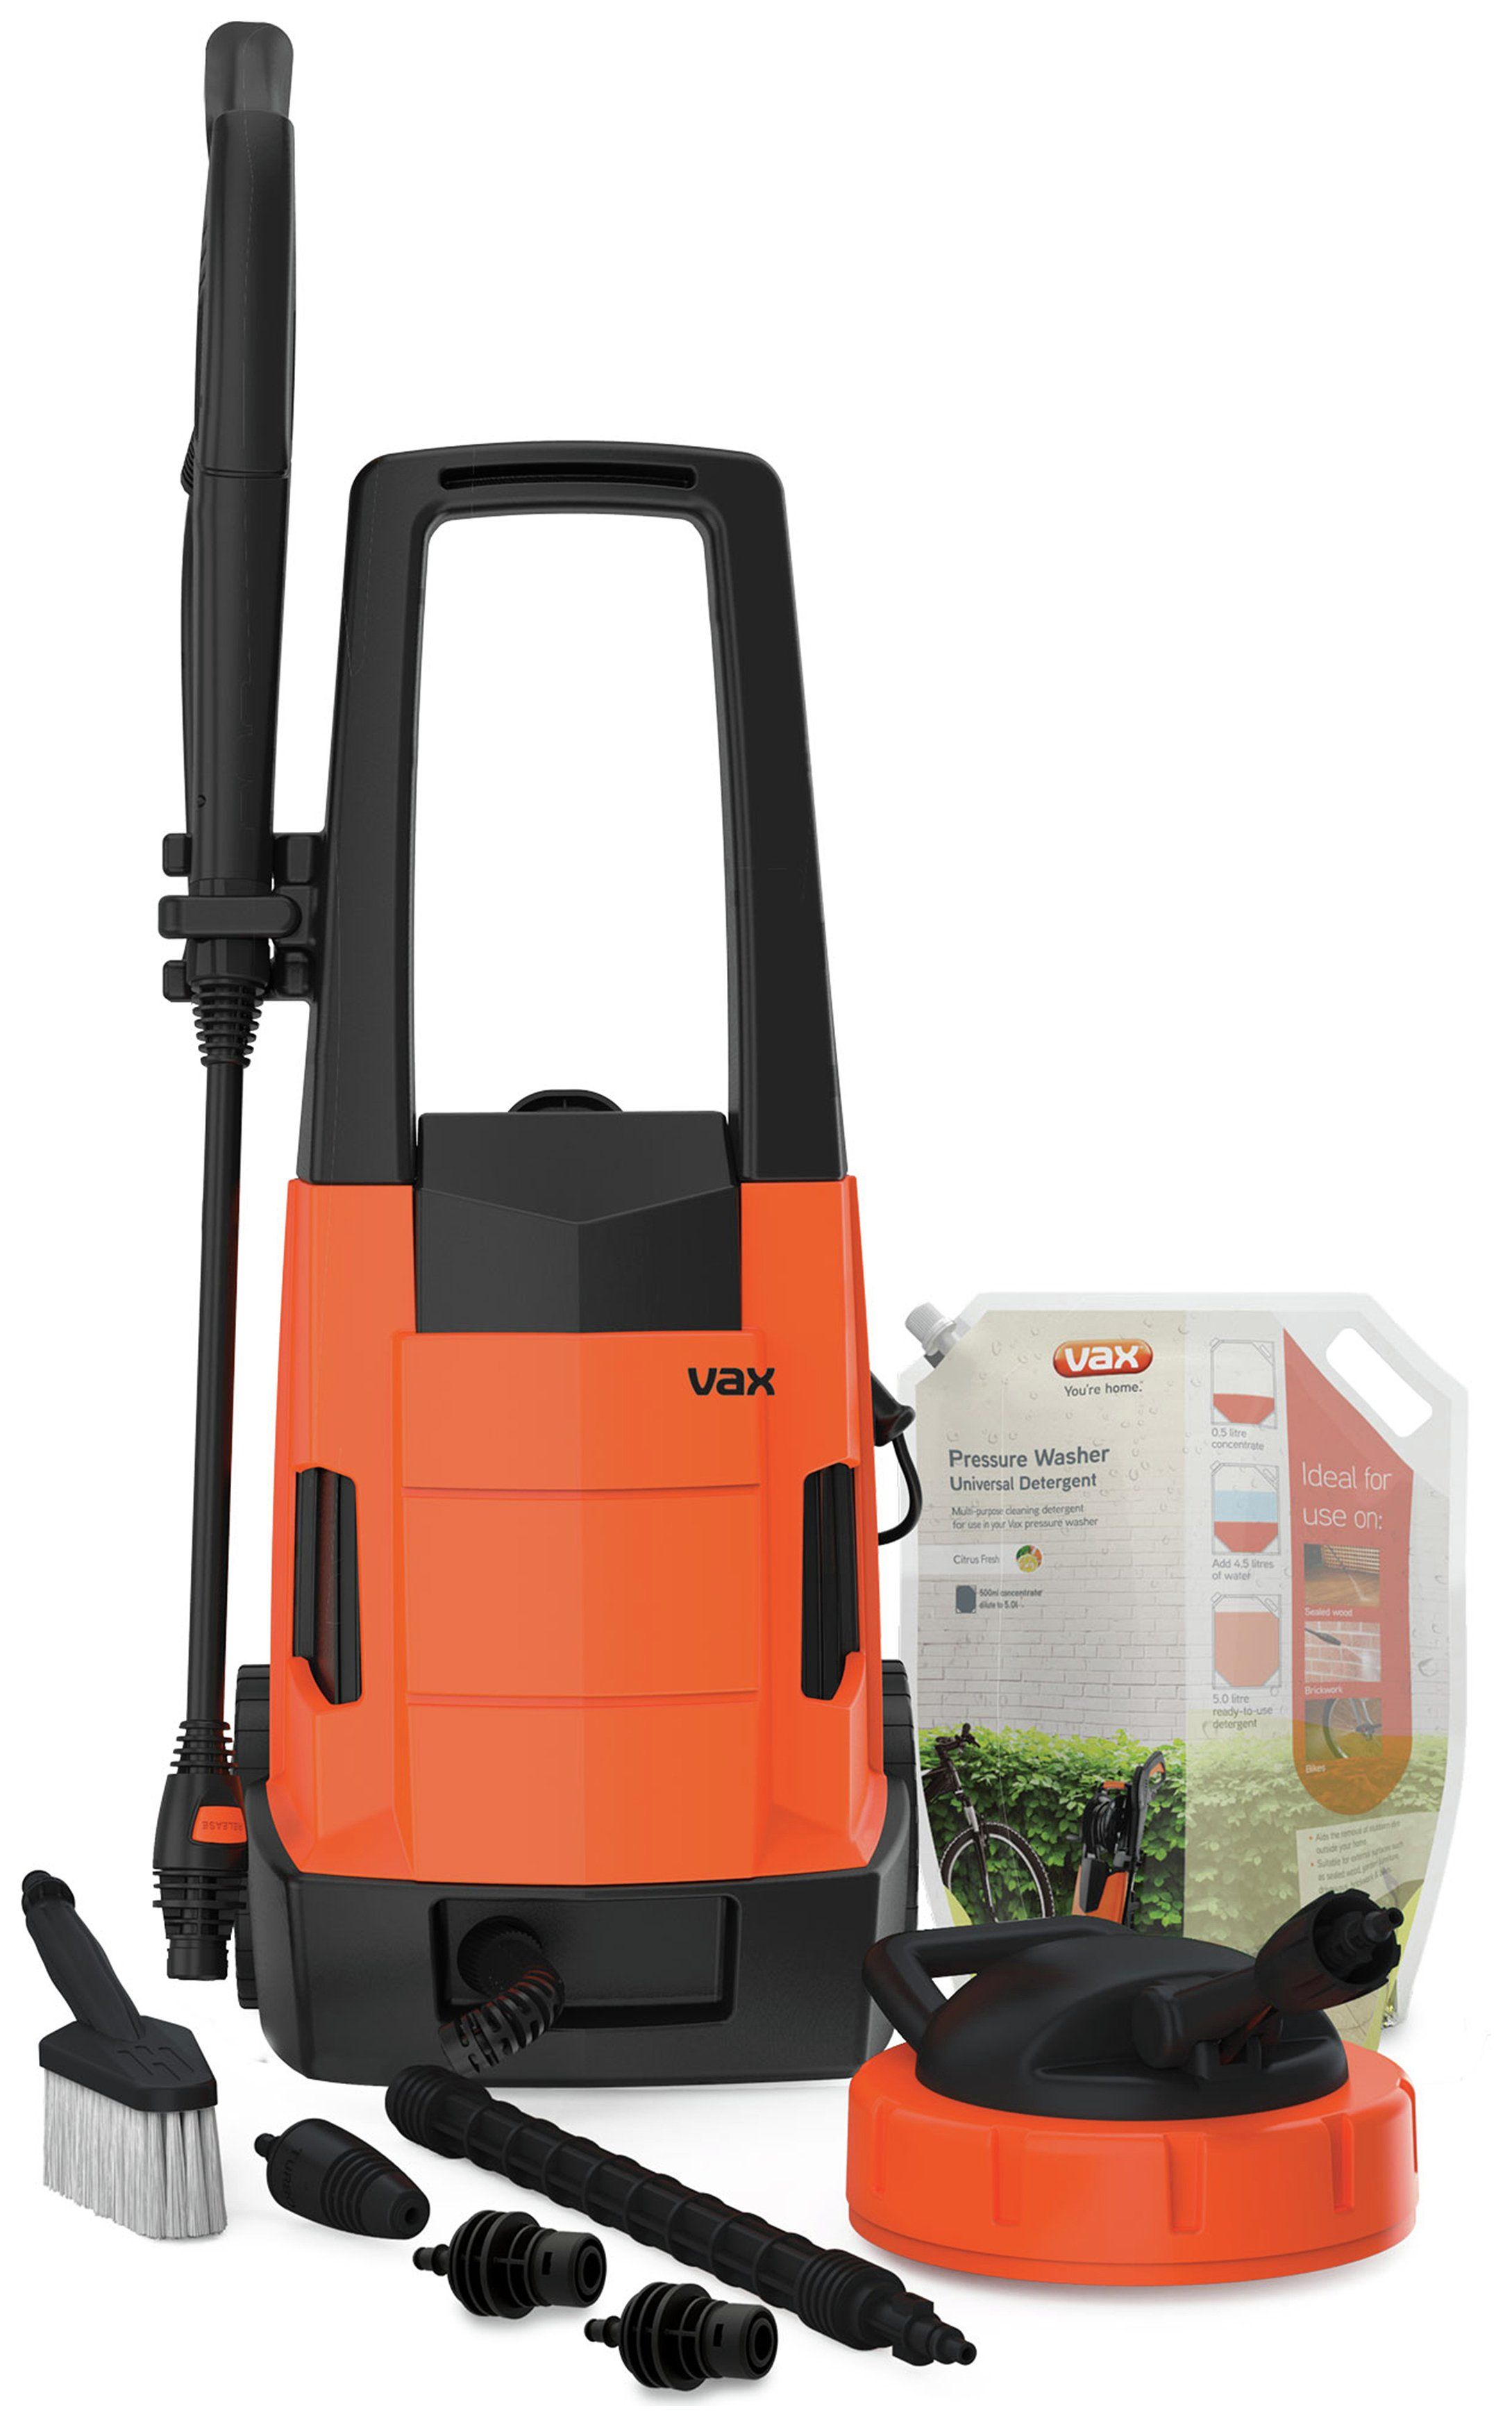 Vax - VPW2Bc Pressure Washer 1 Complete - 2000W lowest price